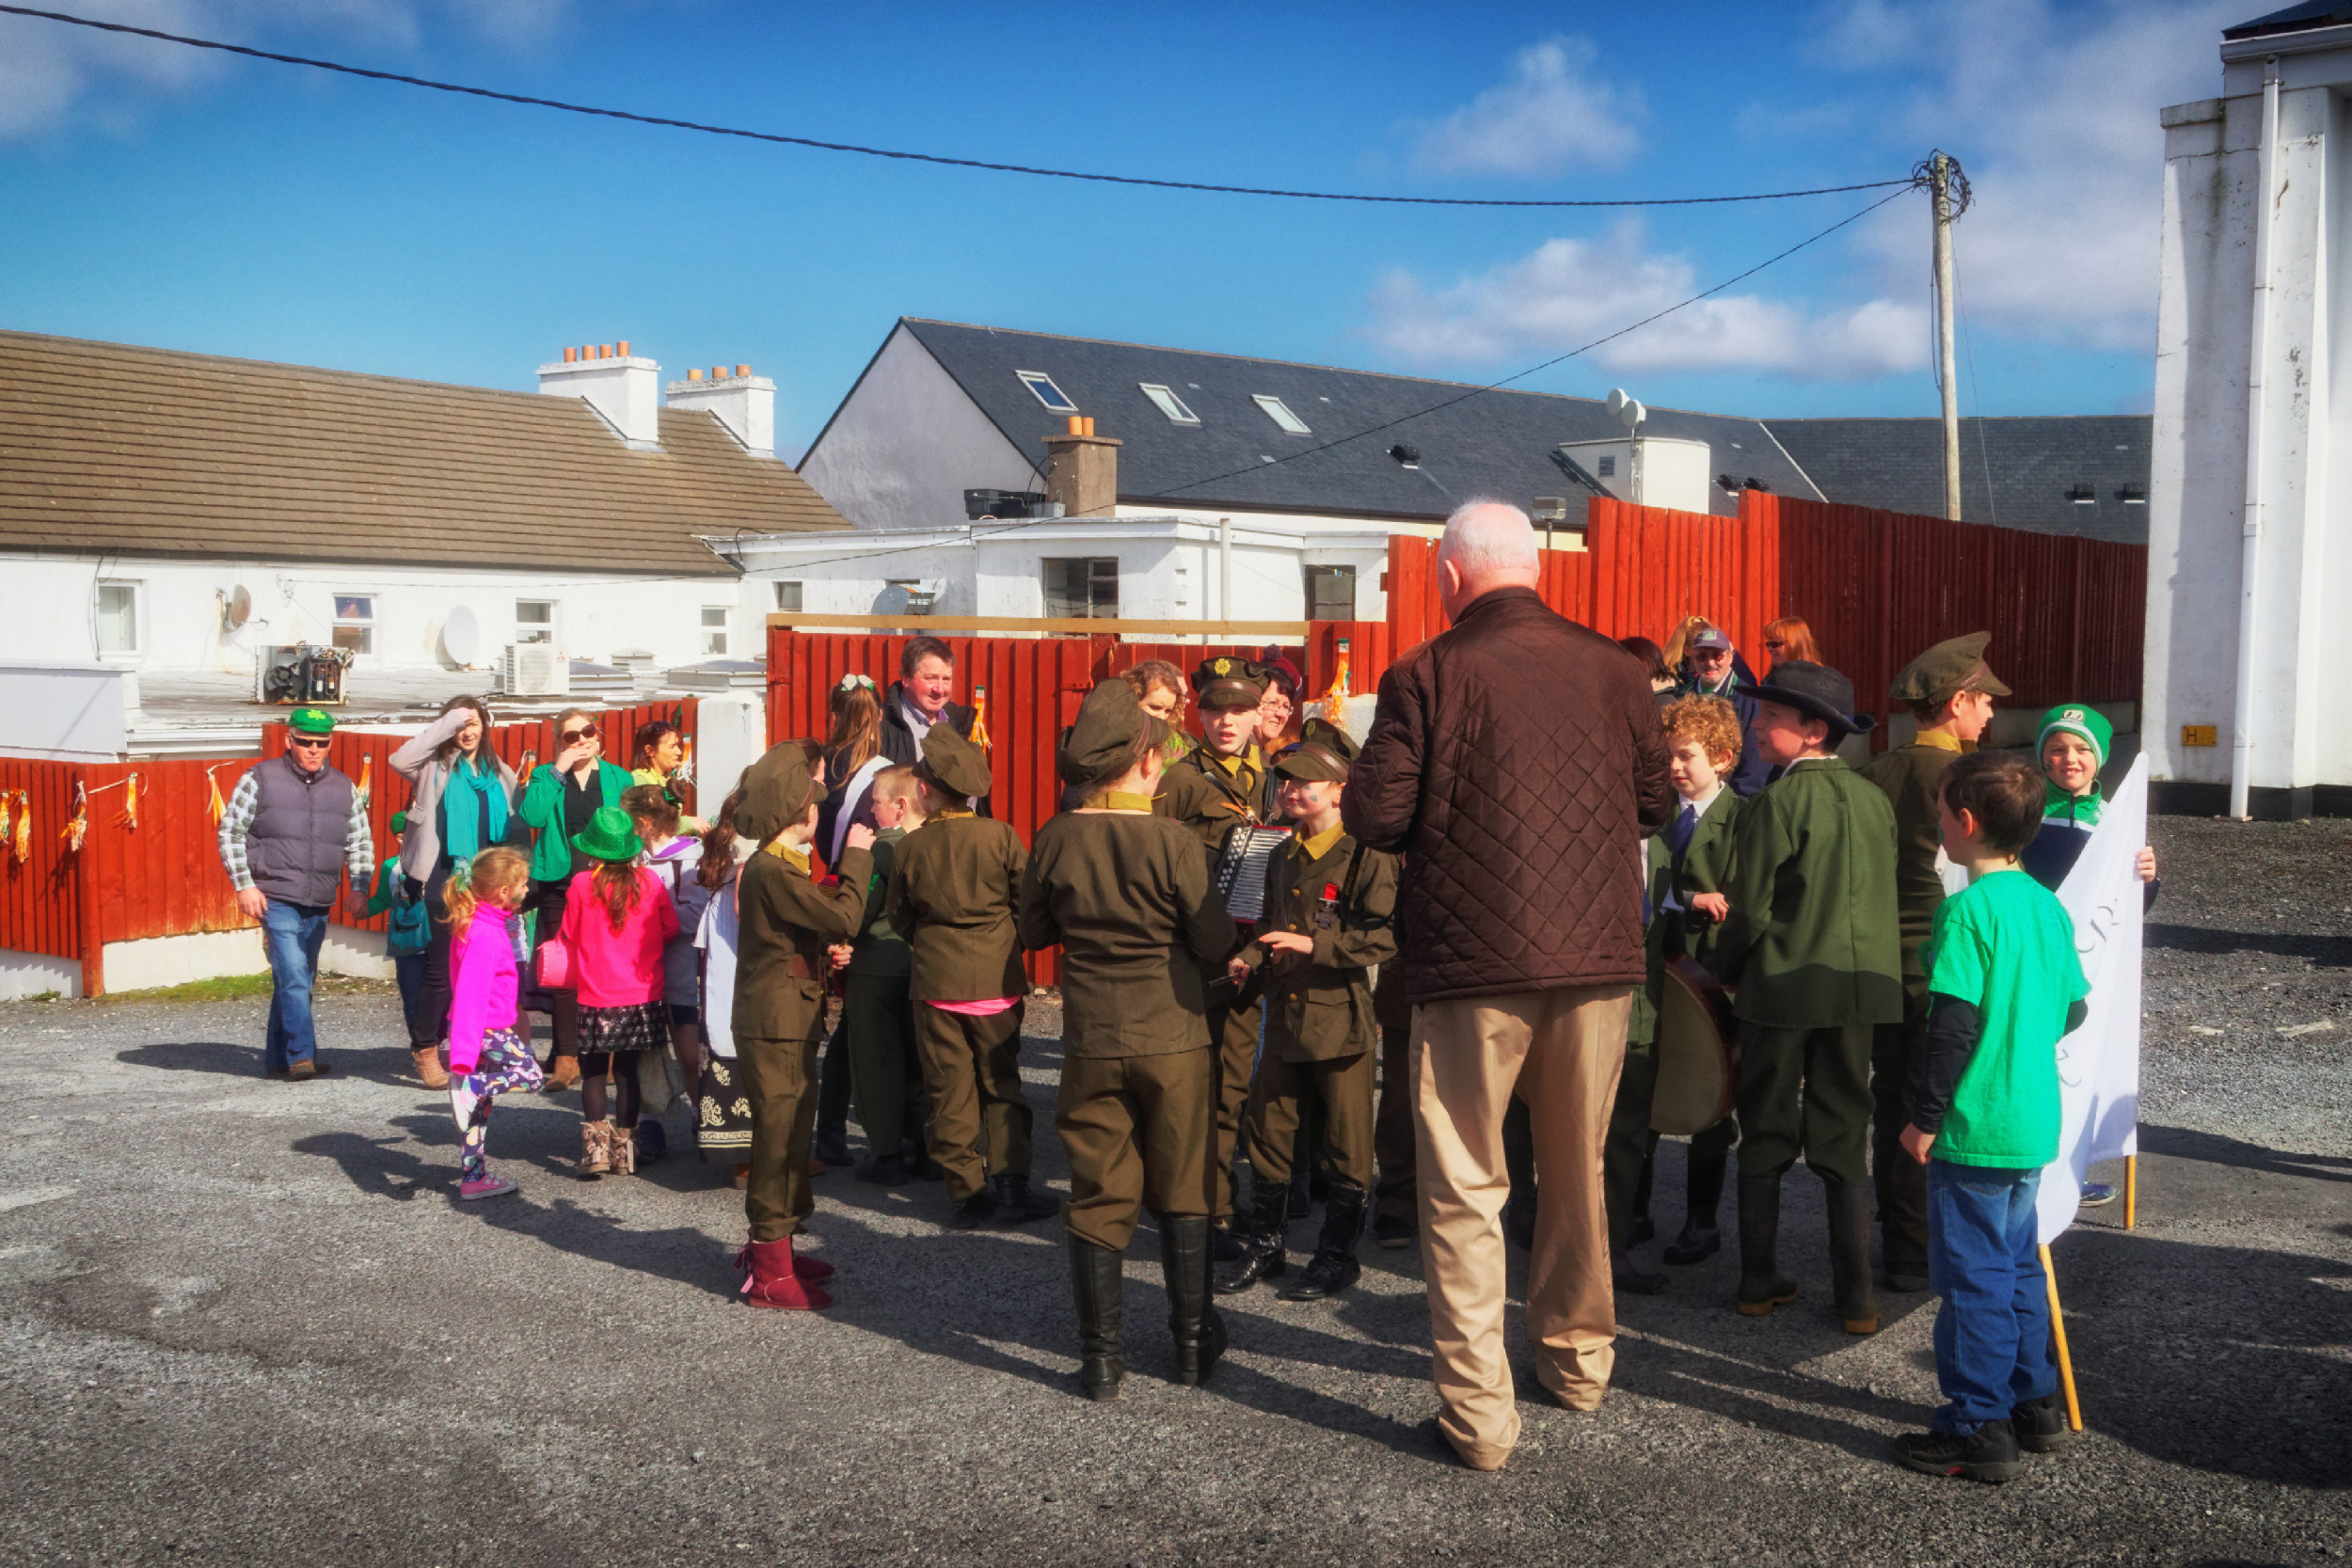 20160320131839-ie-achill-sound_parade-_DxO_13in_DxO96